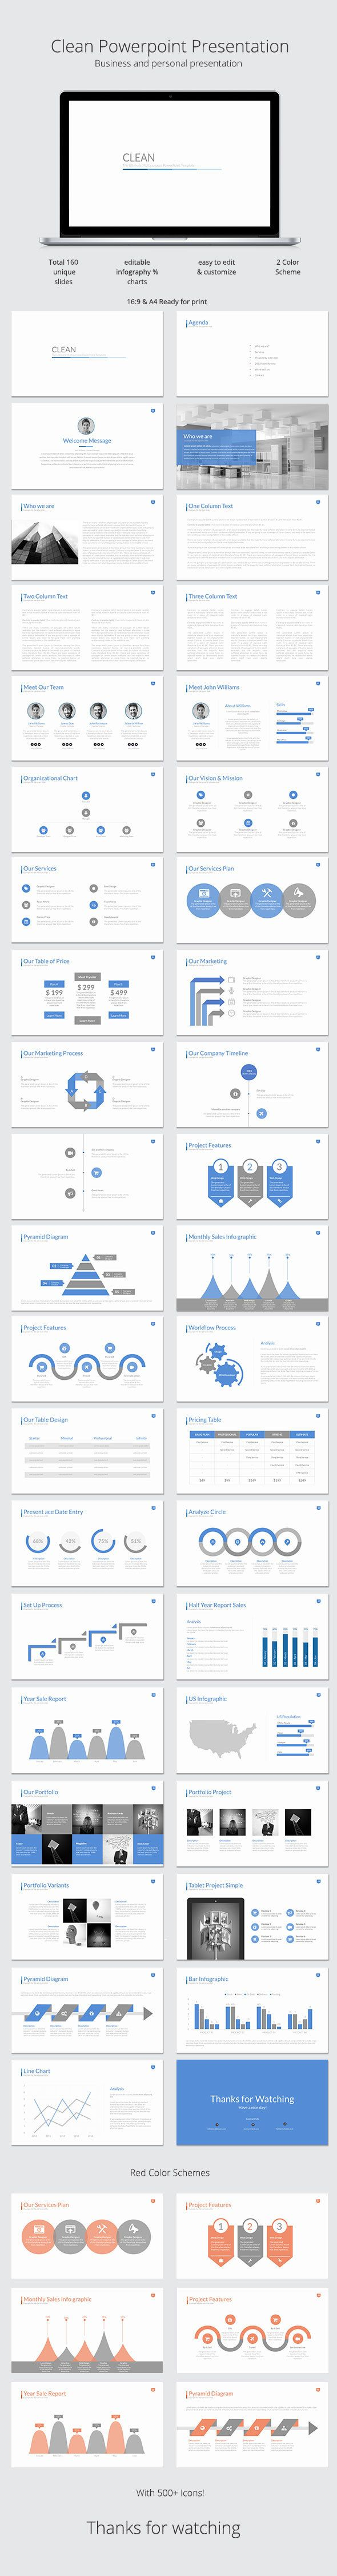 Coolmathgamesus  Marvellous  Ideas About Powerpoint Presentations On Pinterest With Entrancing Clean Powerpoint Template With Cool    Day Plan Template Powerpoint Also How To Insert A Pdf Into Powerpoint In Addition Powerpoint Microsoft And How To Email Powerpoint As Well As Poster Template Powerpoint Additionally How To Add A Video To Powerpoint From Pinterestcom With Coolmathgamesus  Entrancing  Ideas About Powerpoint Presentations On Pinterest With Cool Clean Powerpoint Template And Marvellous    Day Plan Template Powerpoint Also How To Insert A Pdf Into Powerpoint In Addition Powerpoint Microsoft From Pinterestcom